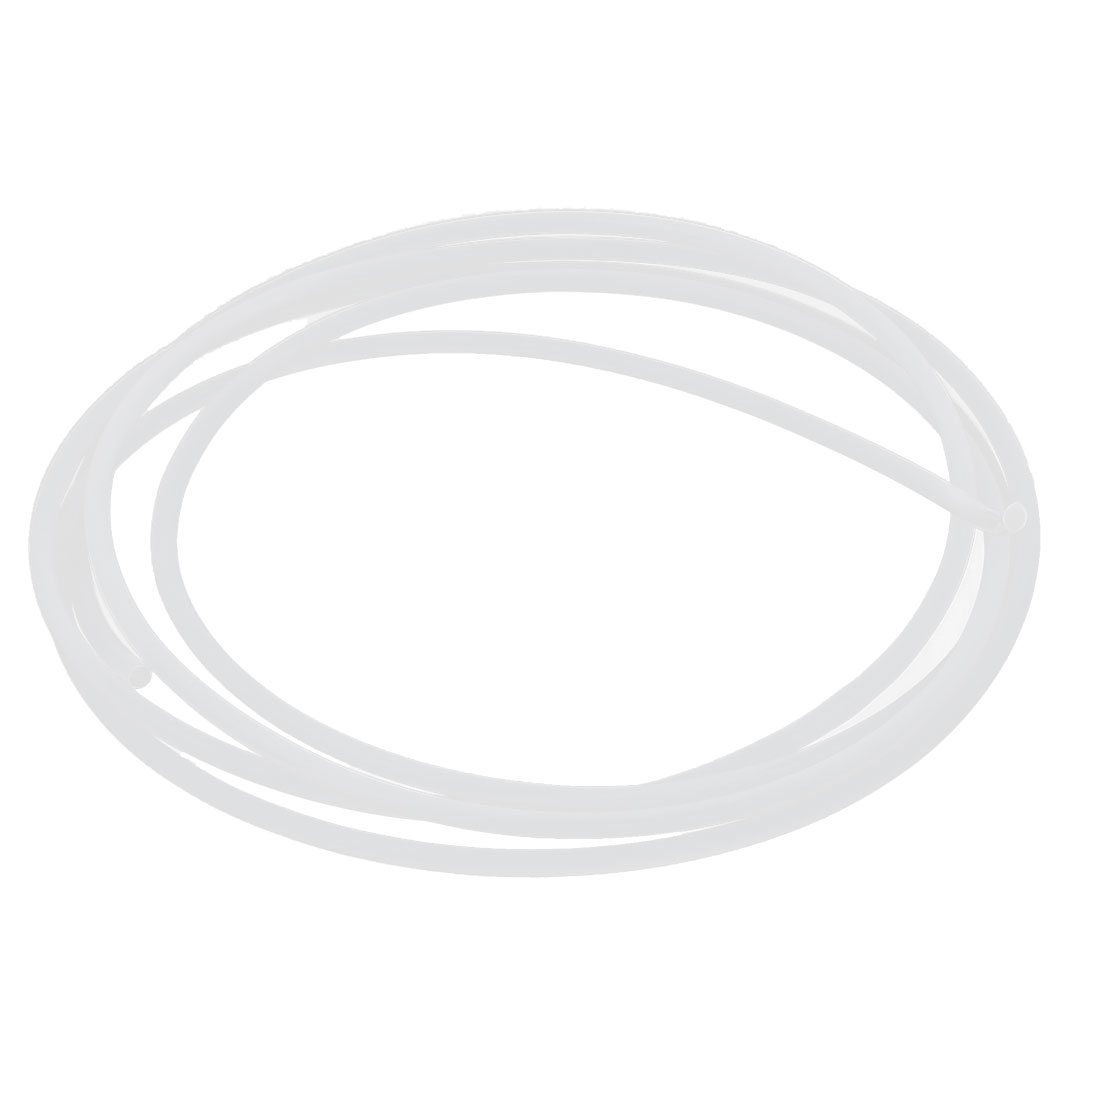 2M Length 3mm ID 4mm OD PTFE Tubing Tube Pipe for 3D Printer RepRap